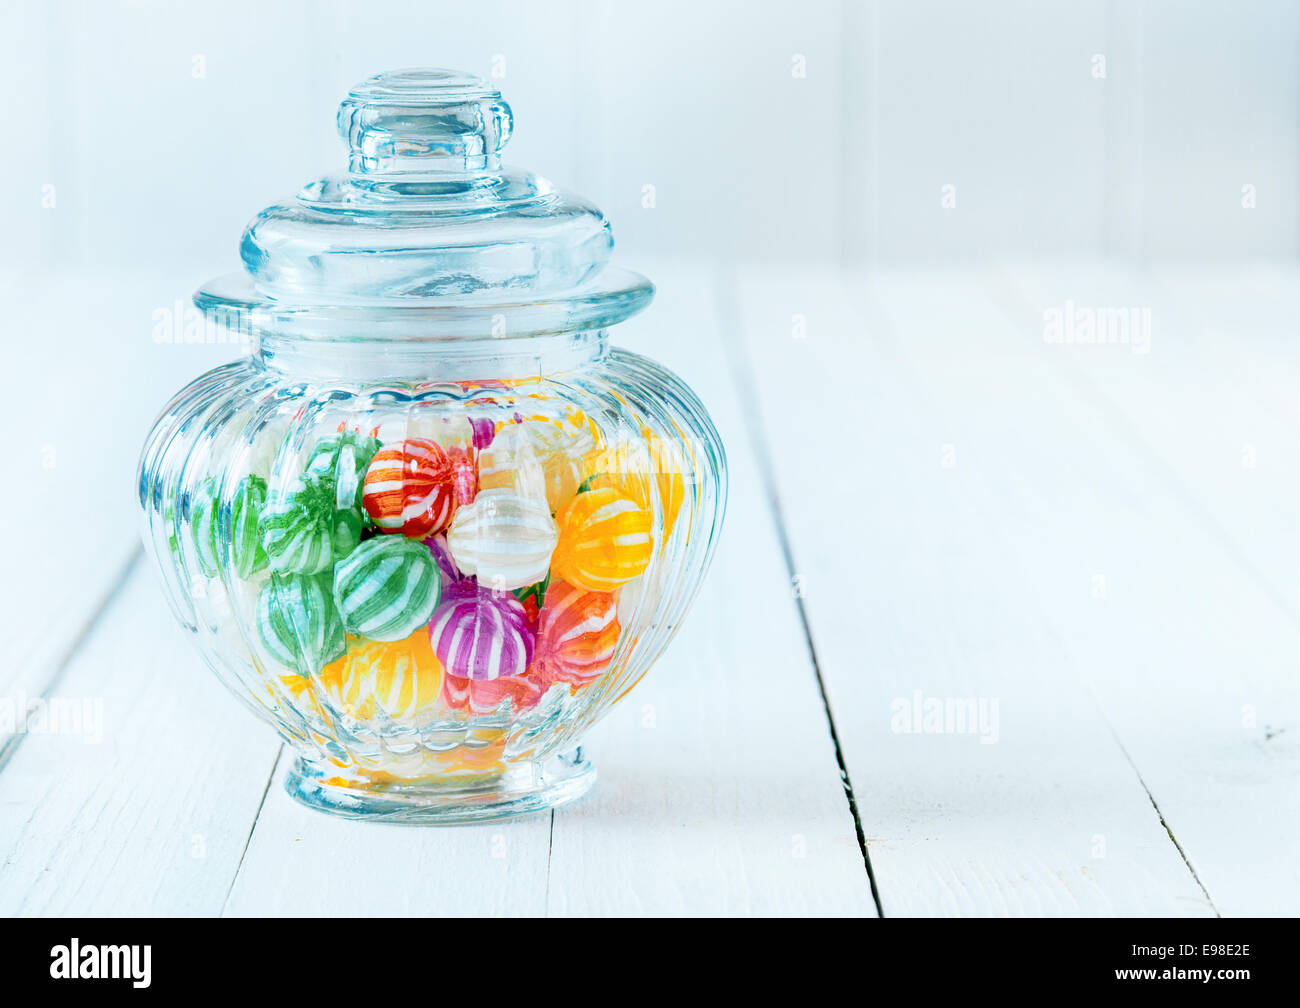 Photograph of a beautiful jar full of assorted colorful candies, perfect for gift purpose. - Stock Image